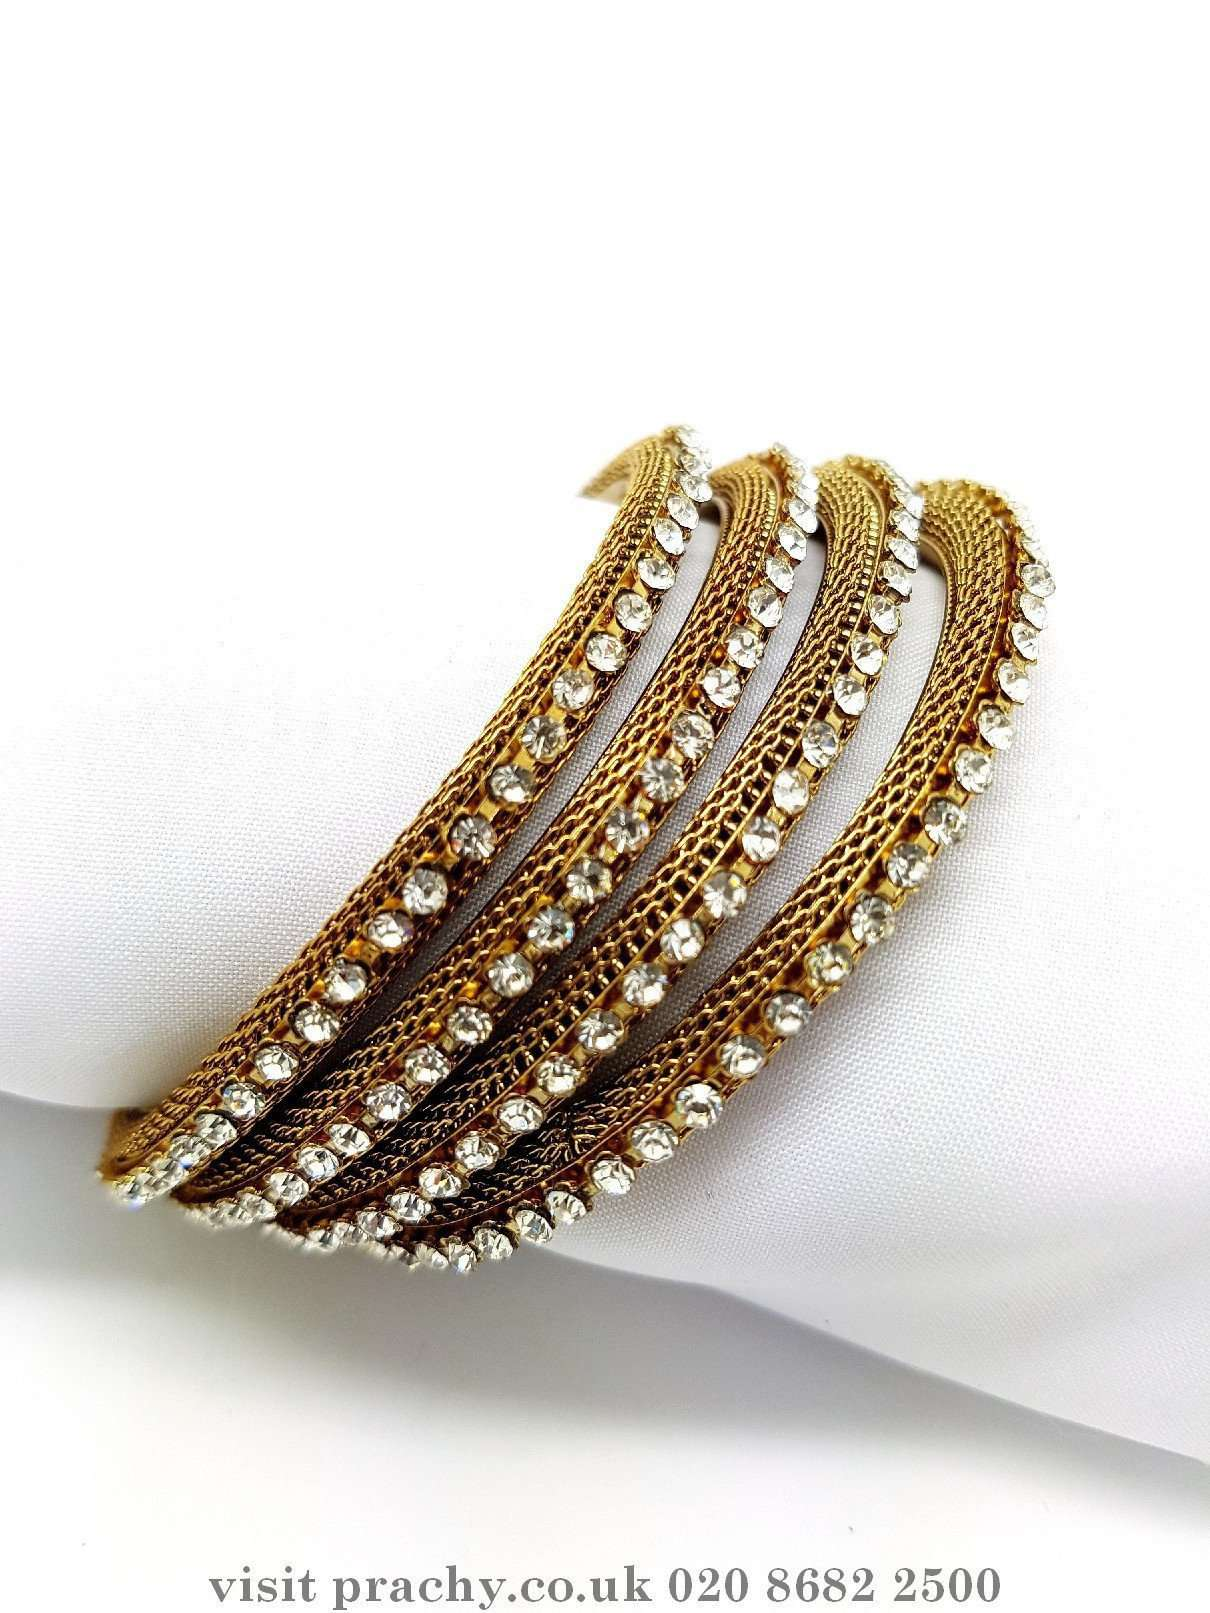 Antique Finish Bangles (Set of 4) - V 0816 AE870 - Prachy Creations